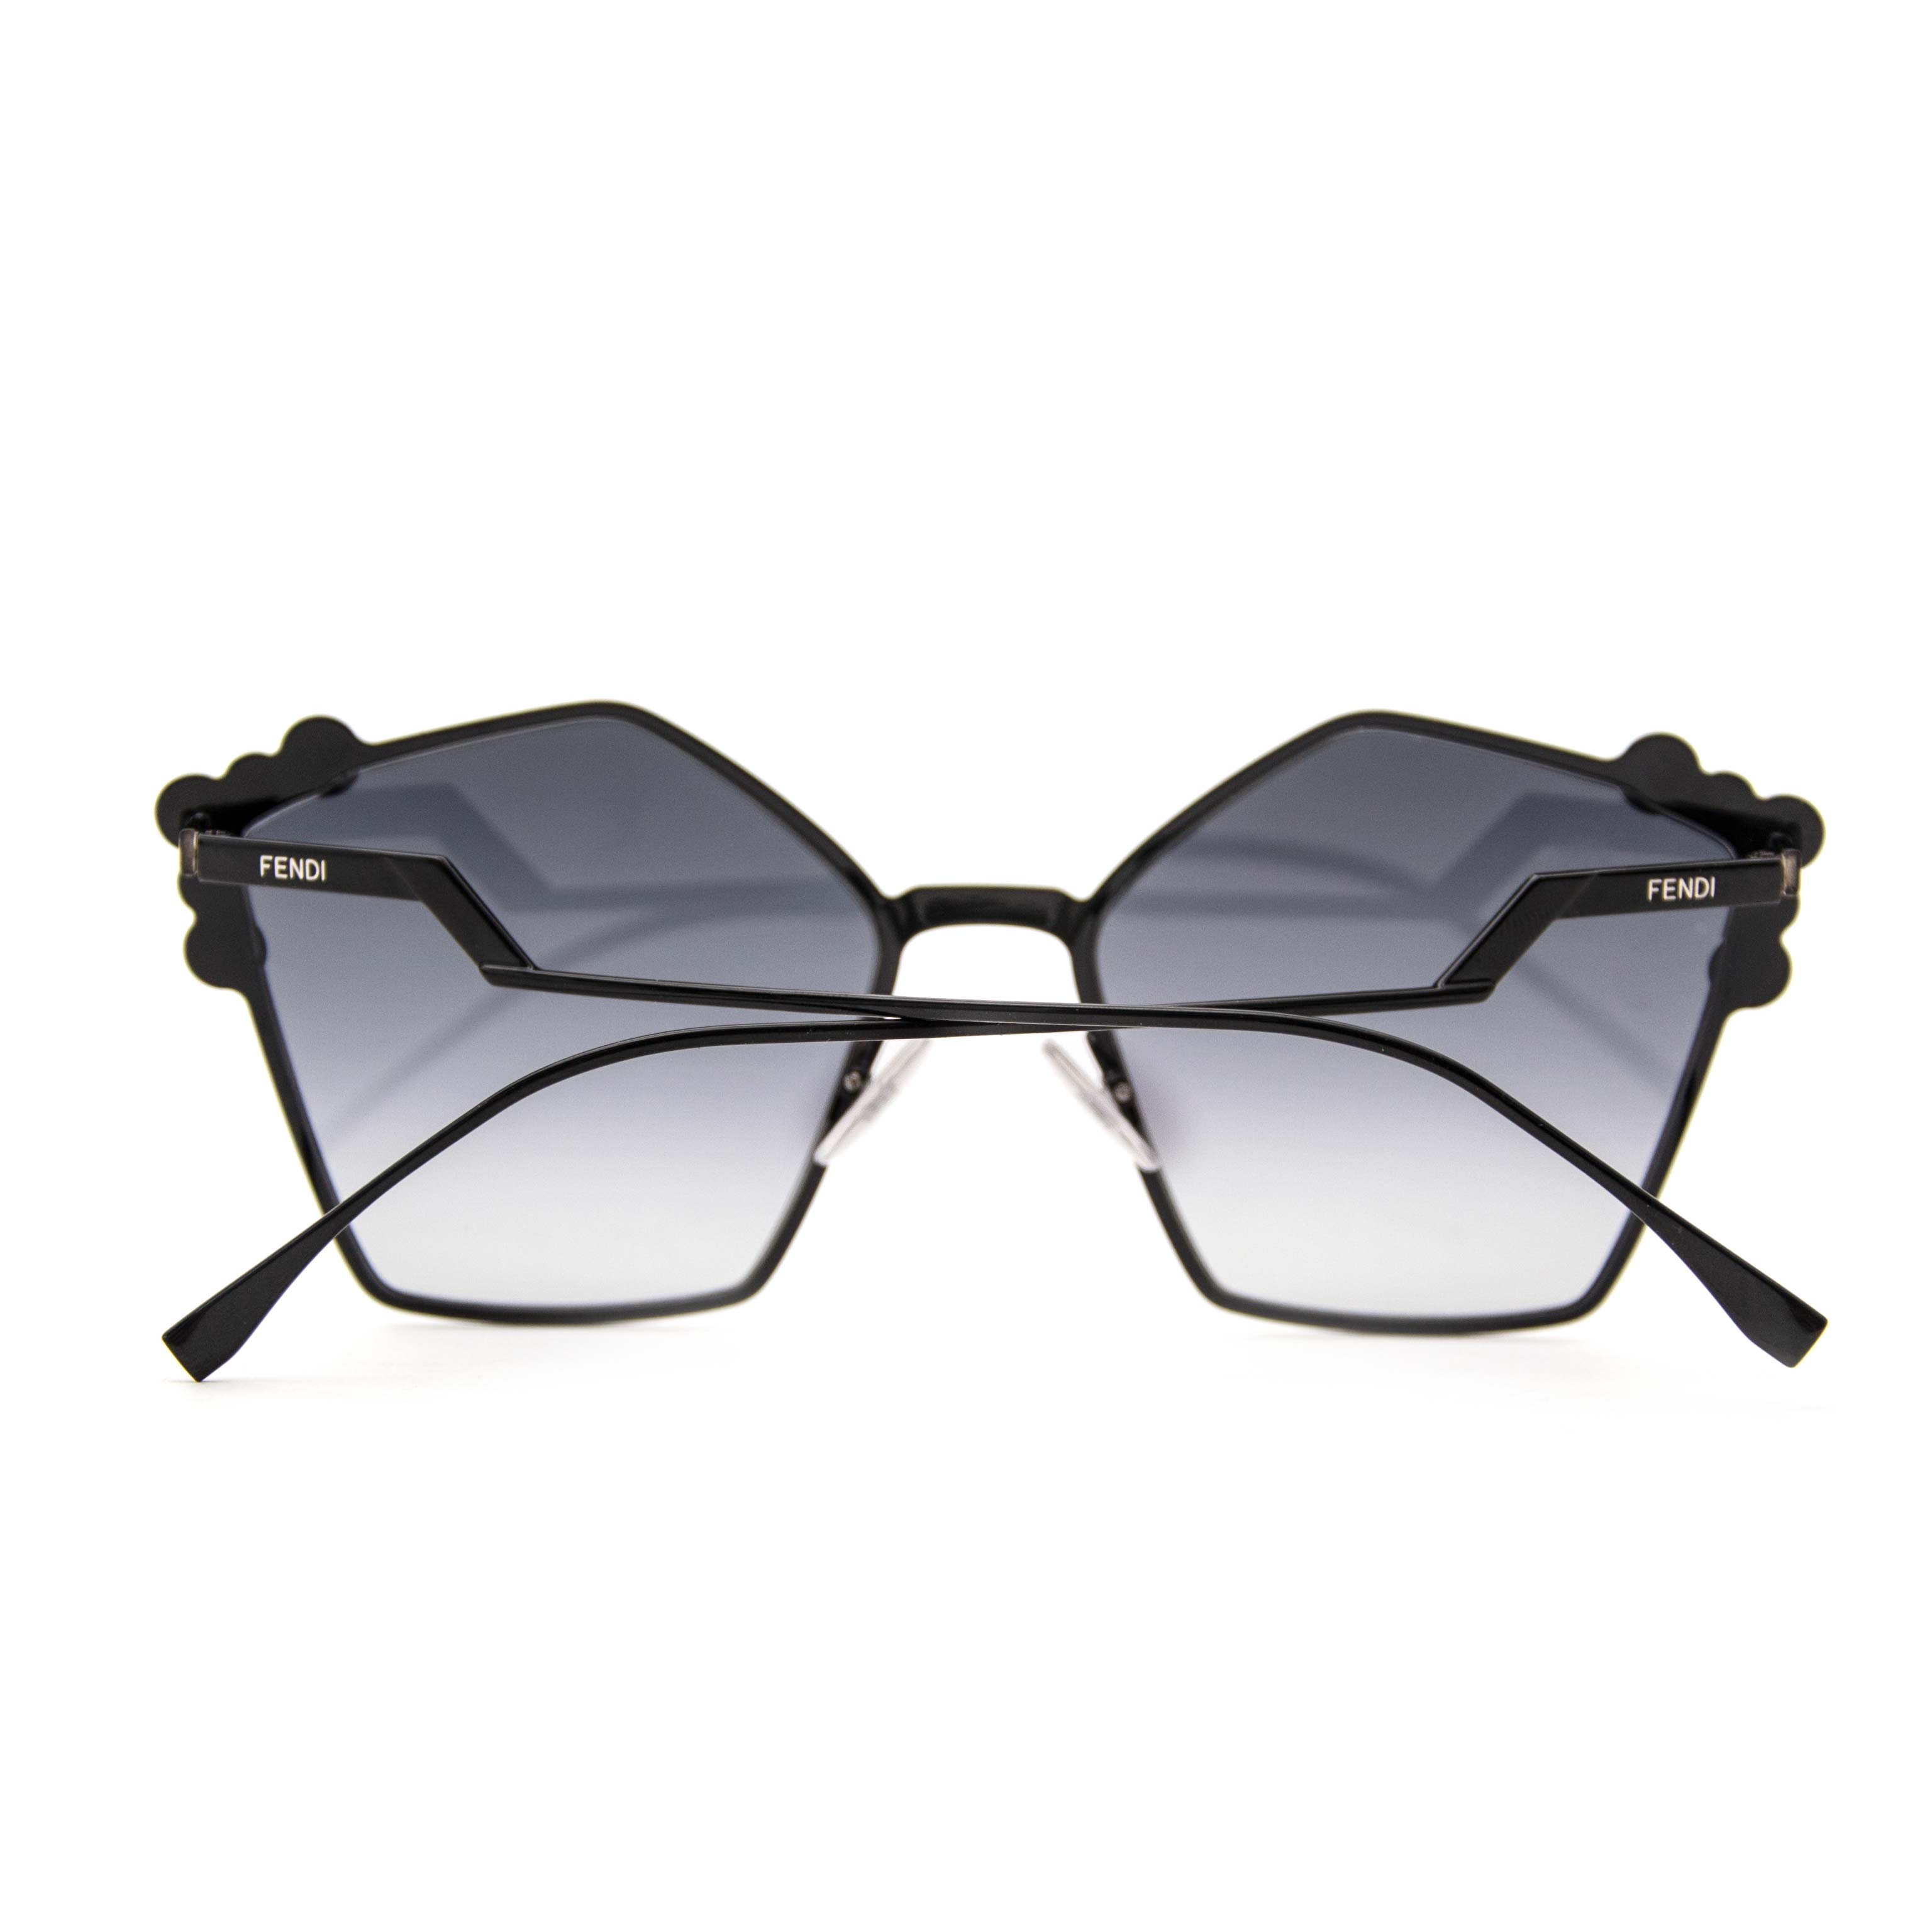 Fendi Can Eye Sunglasses for sale online at Labellov